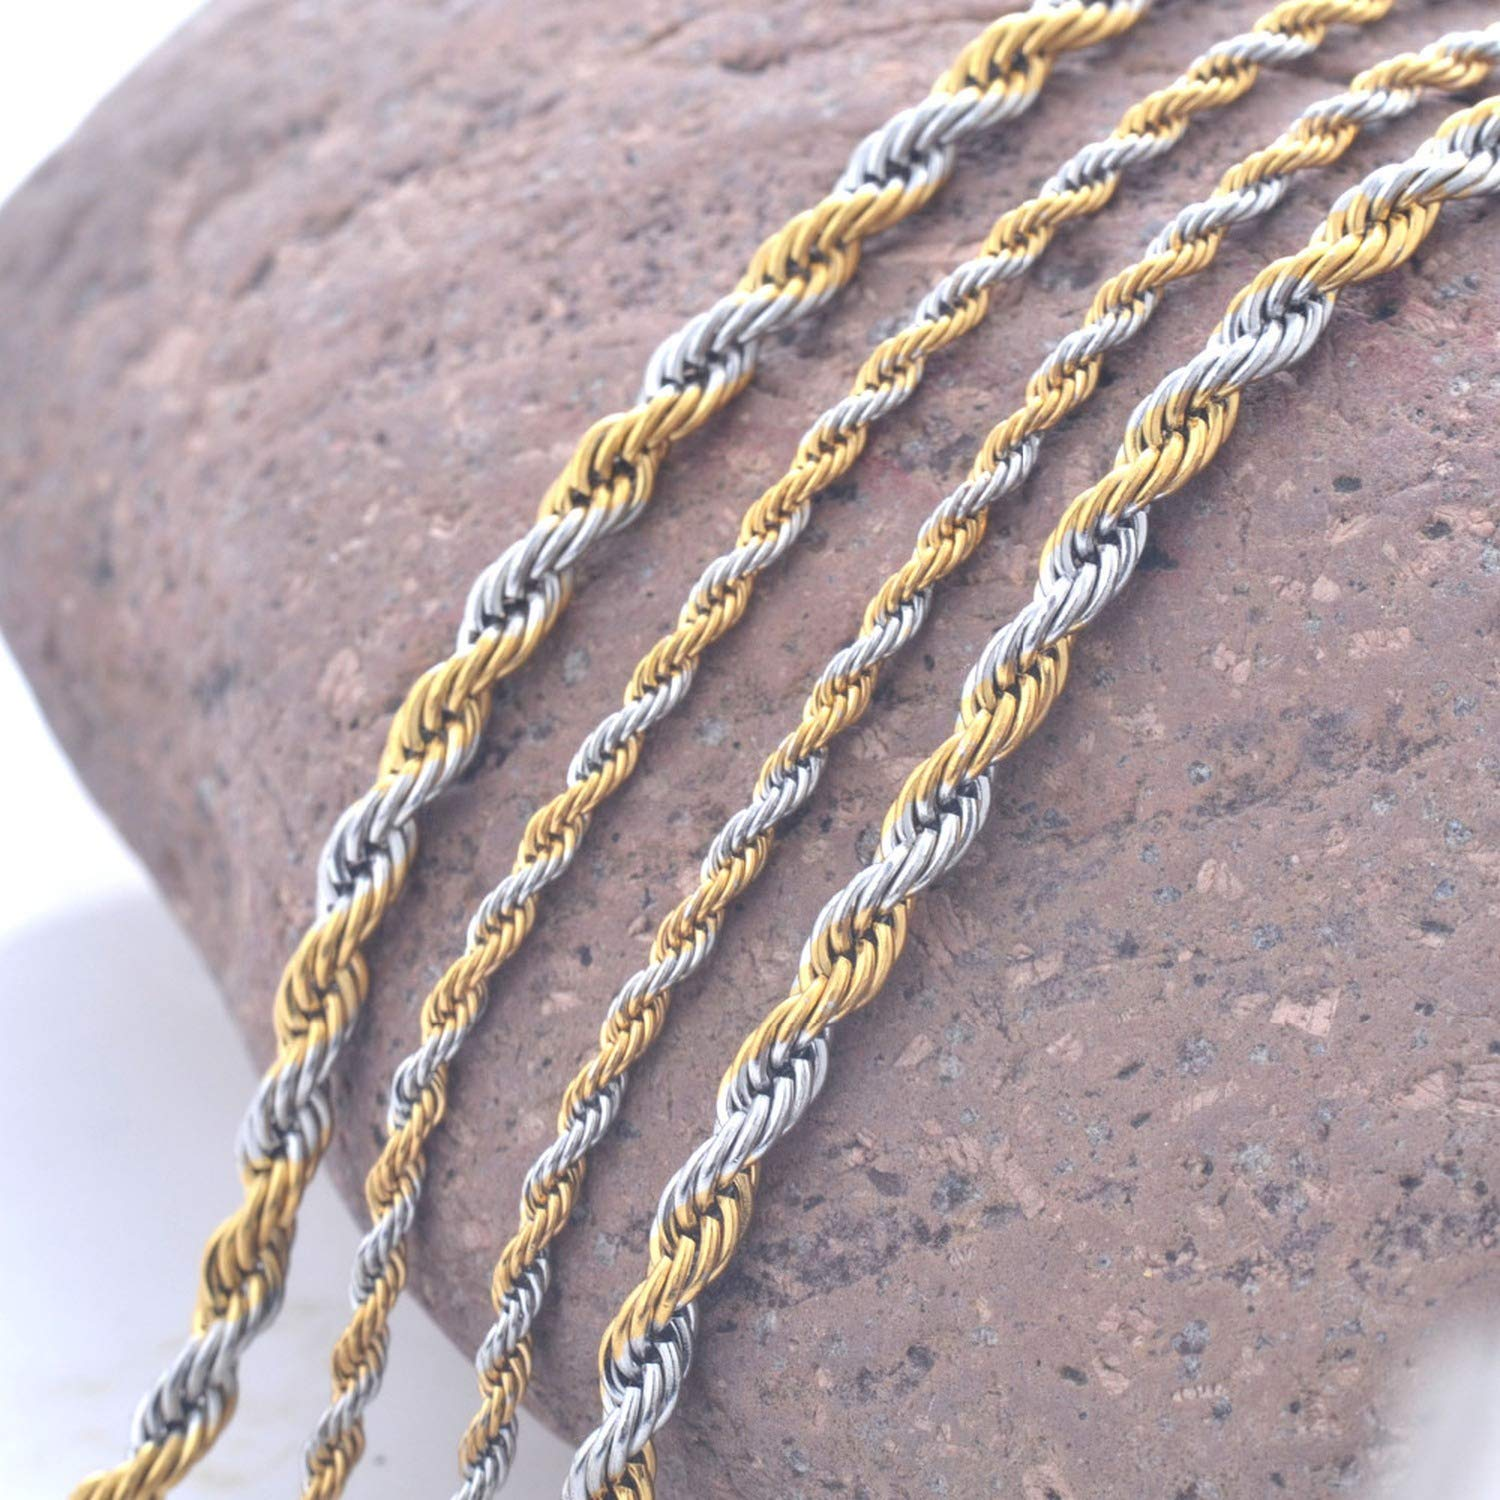 Workings Width 2mm and 4mm Stainless Steel Rope Chain Goldlace Statement 316L Stainless Steel Twistedlace Gold Chain